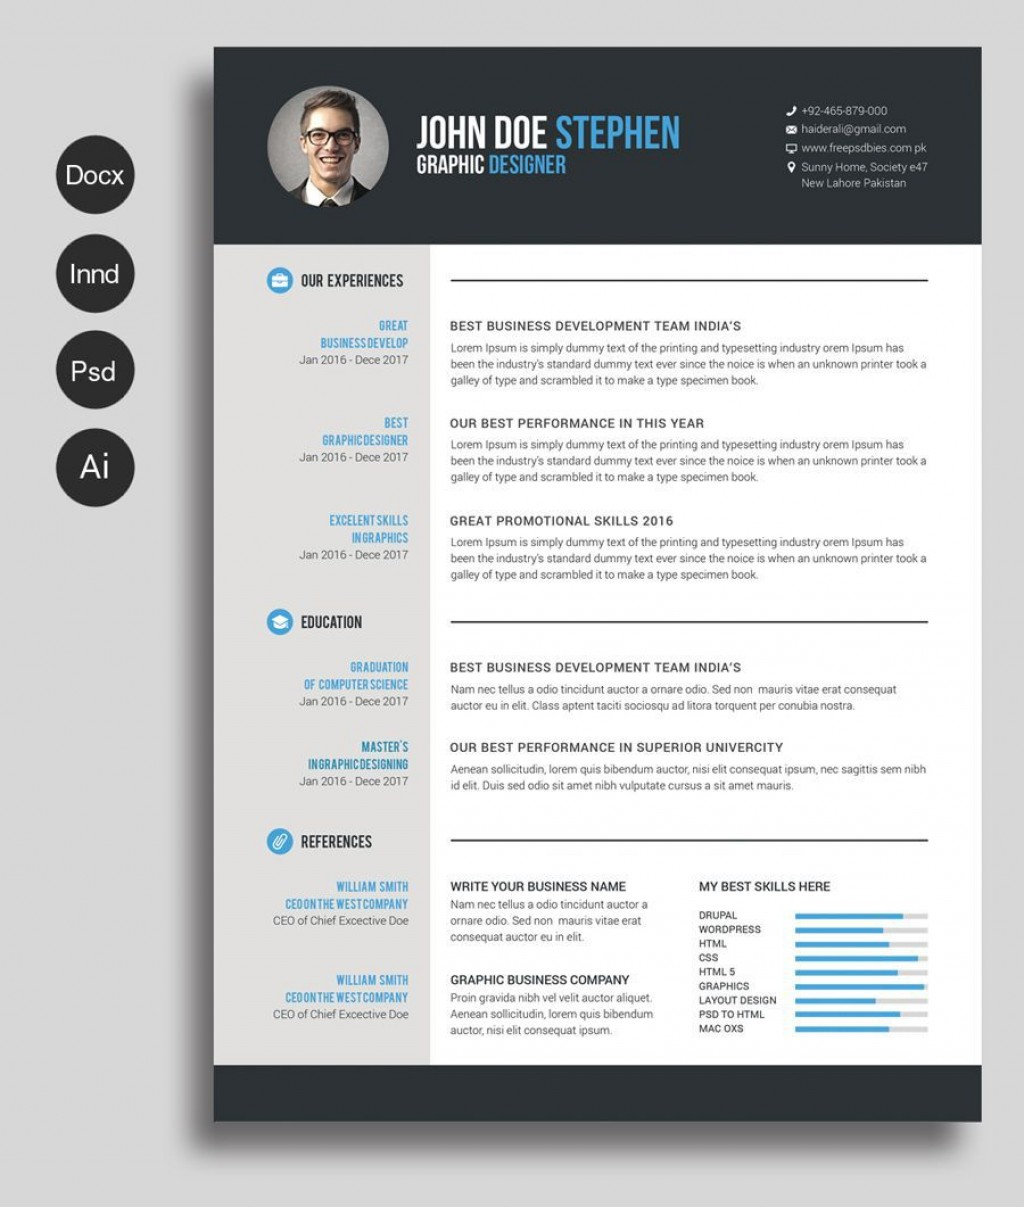 000 Phenomenal Resume Template M Word Free Highest Clarity  Modern Microsoft Download 2010 Cv With PictureLarge